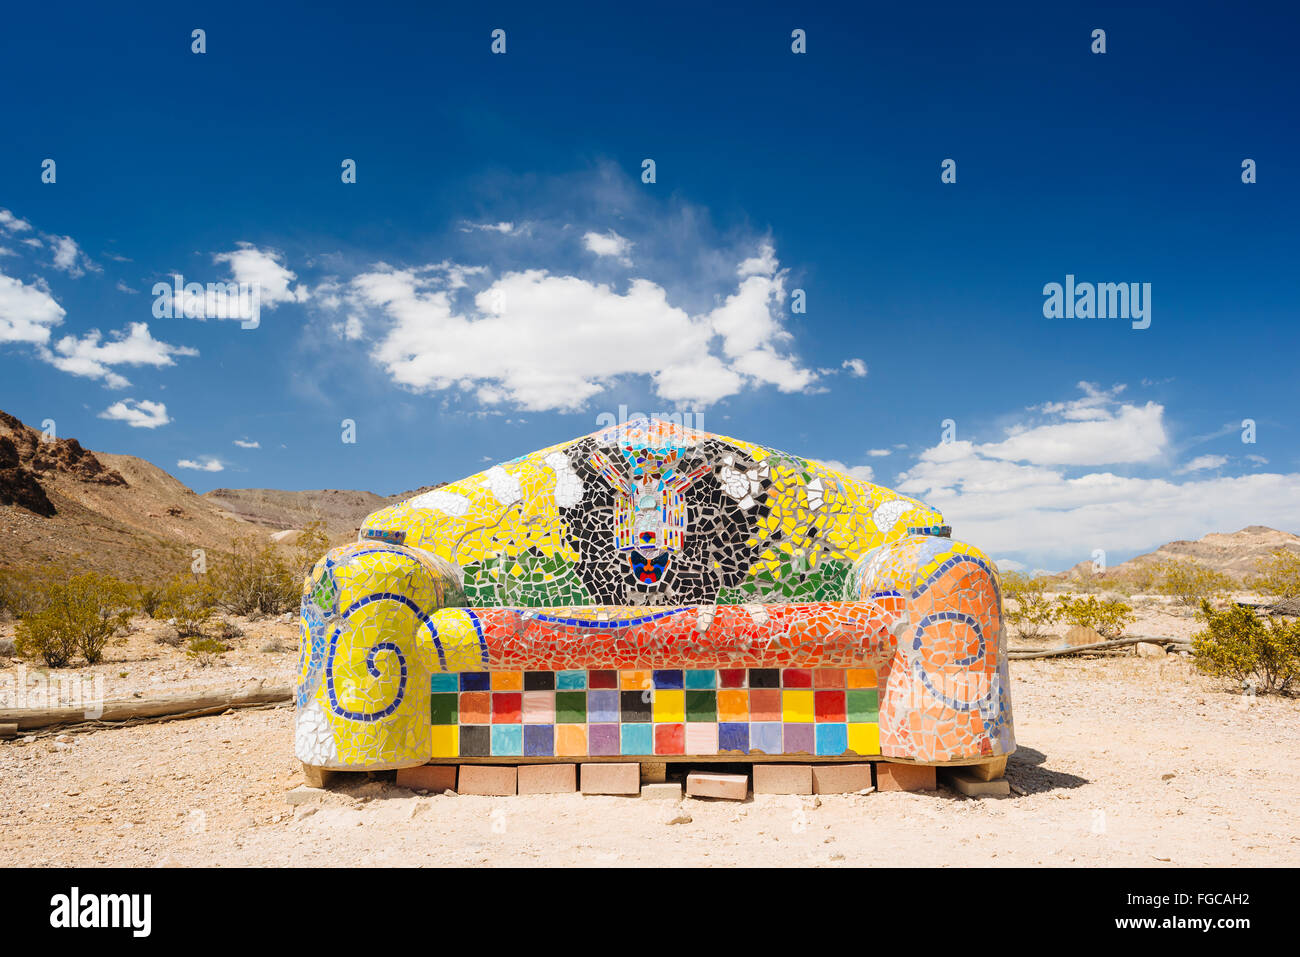 A sculpture by Sofie Siegmann called 'Sit Here!' in Goldwell Open Air Museum Rhyolite, Nevada - Stock Image